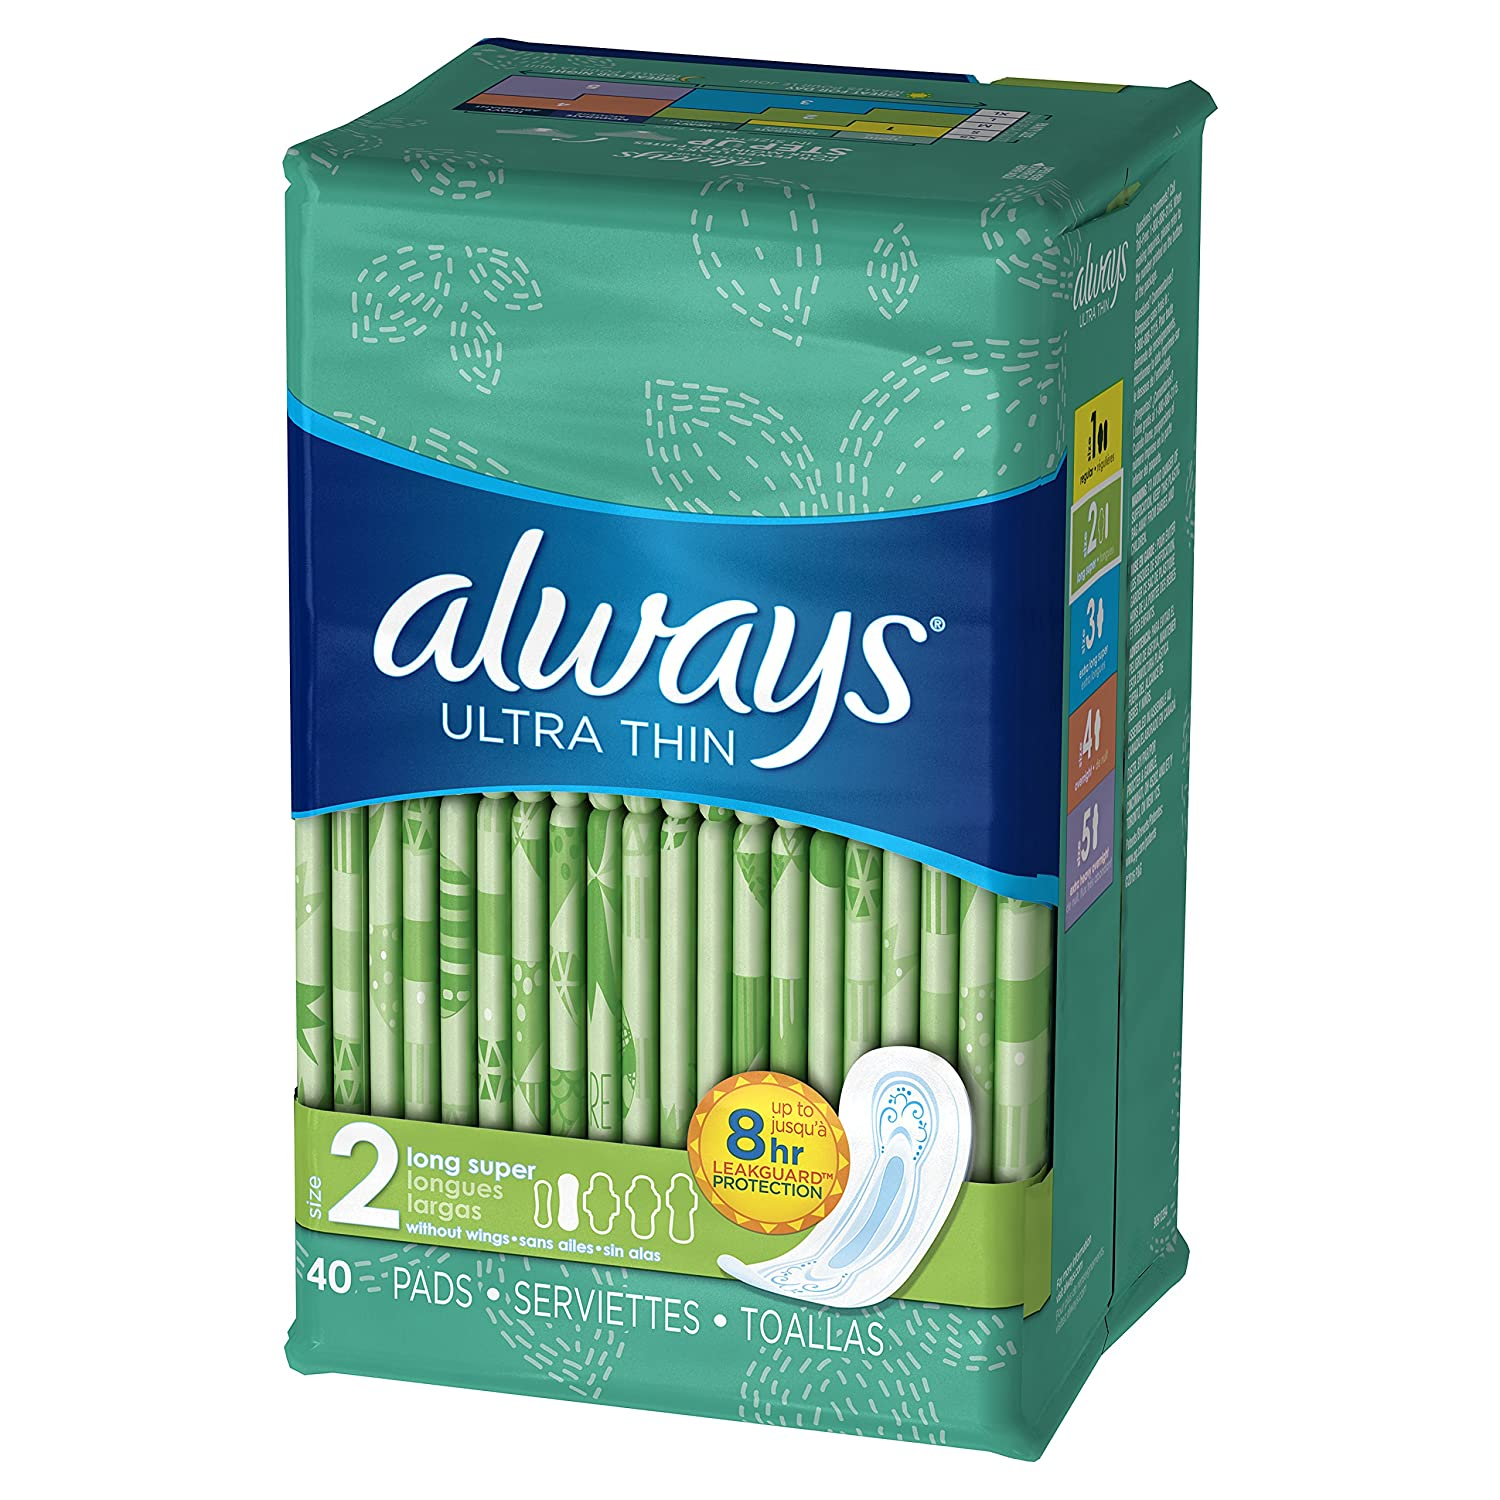 Amazon.com: Always Ultra Thin Size Feminine Pads with Wings: Health & Personal Care